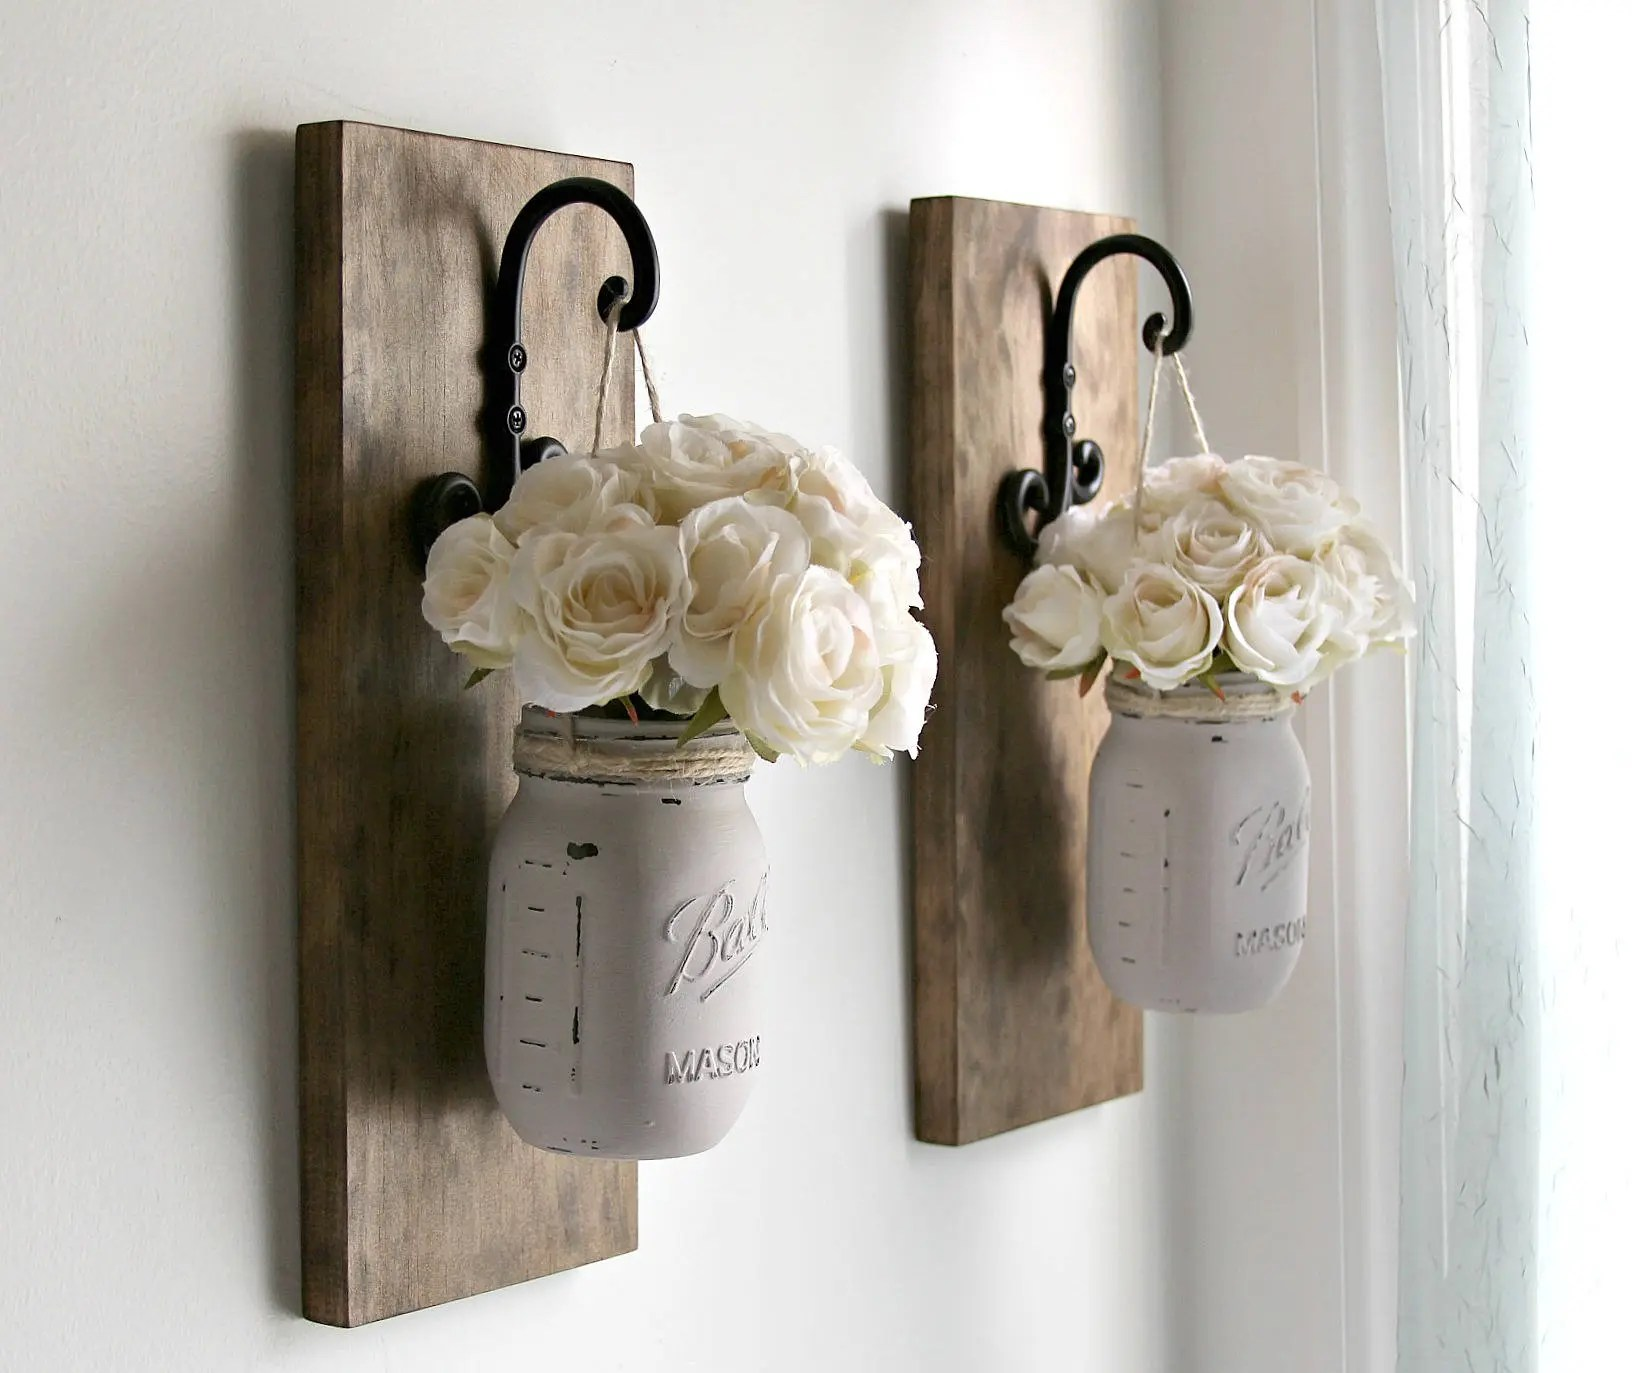 Best Rustic Wall Sconces Rustic Wall Decor Mason Jars This Month